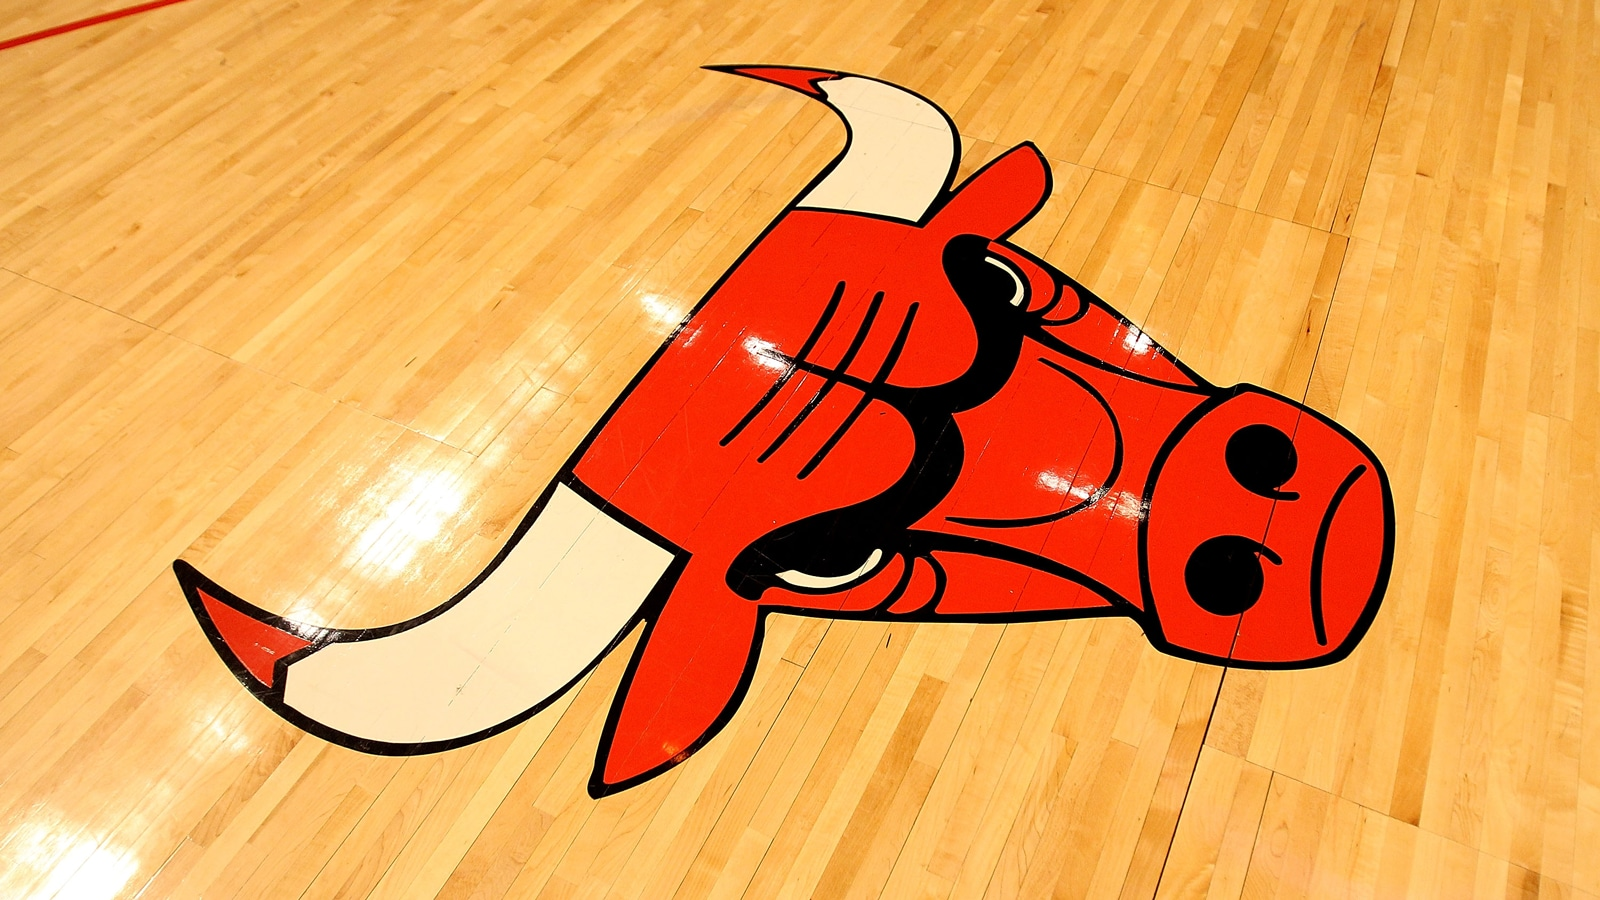 Chicago Bulls logo at the United Center